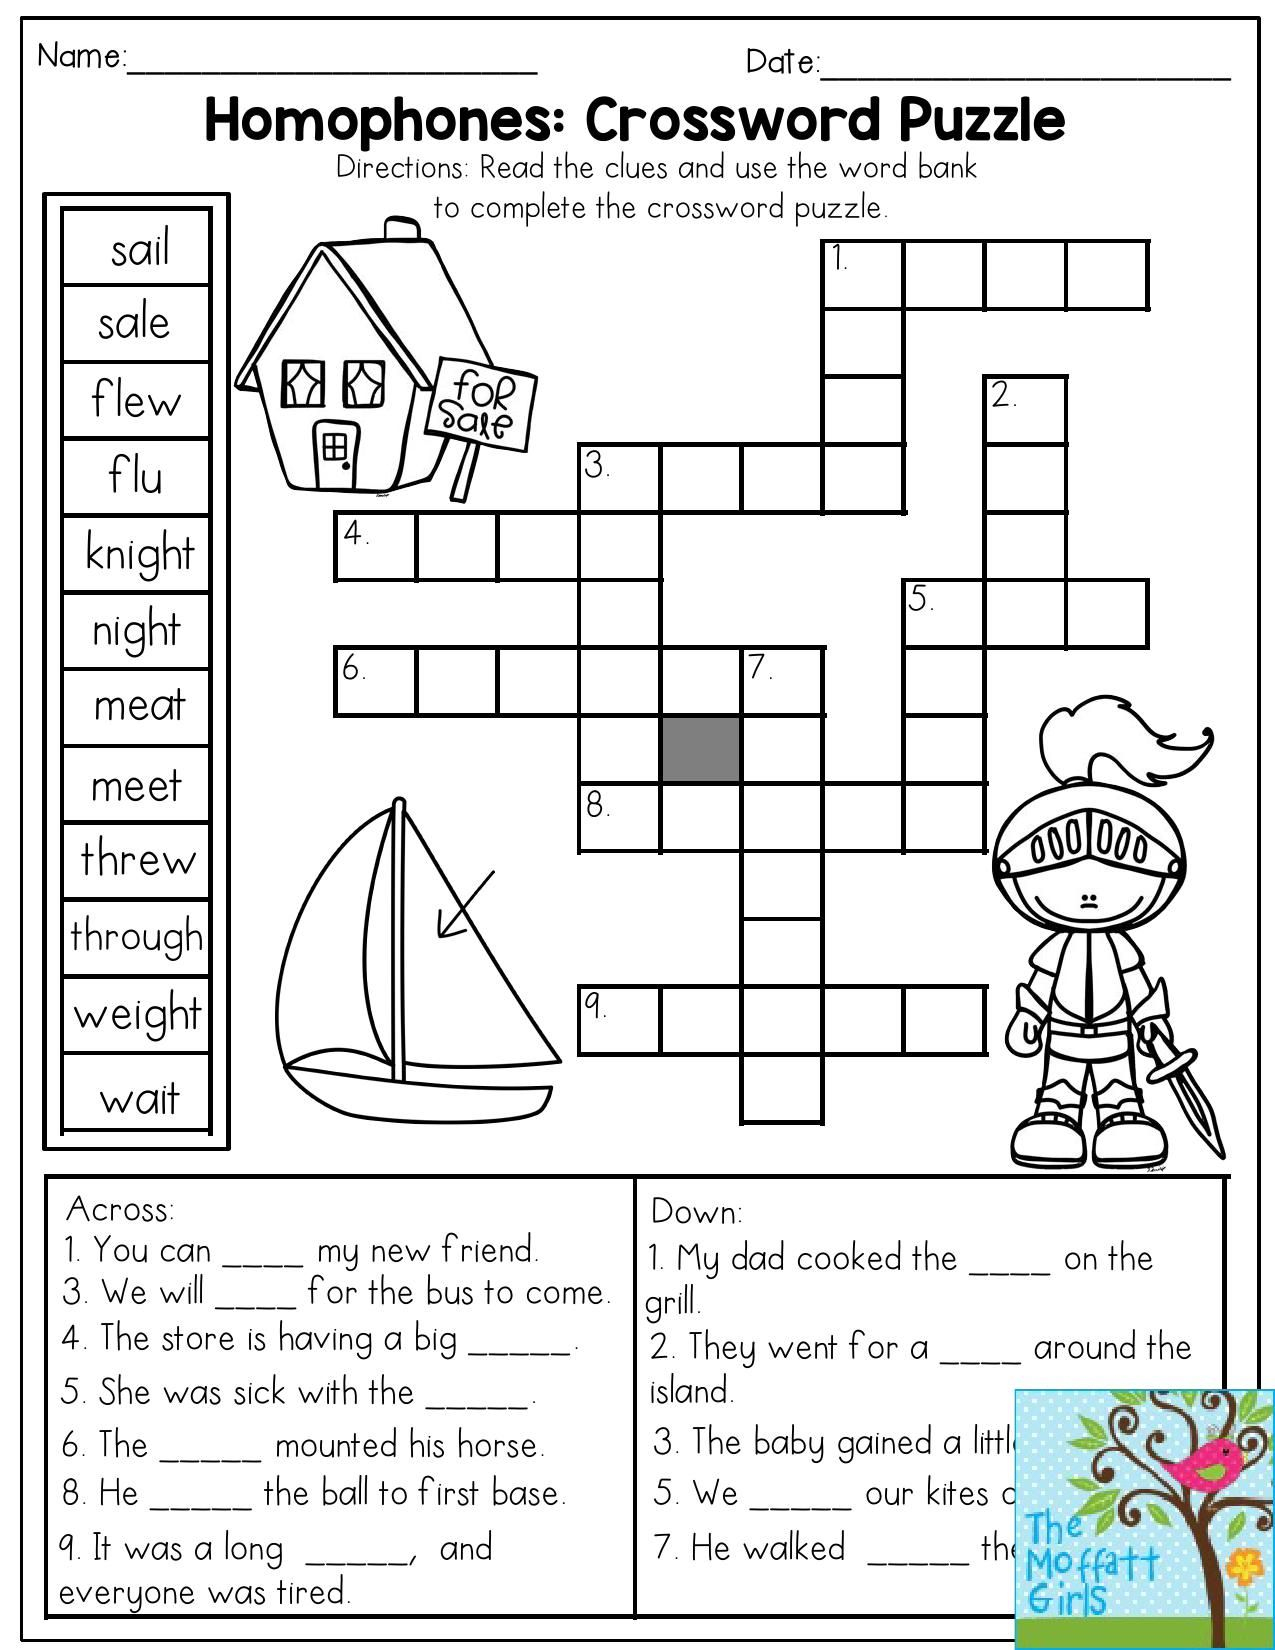 Homophones: Crossword Puzzle- Read The Clues And Use The Word Bank - Printable Crossword Puzzle For 2Nd Graders